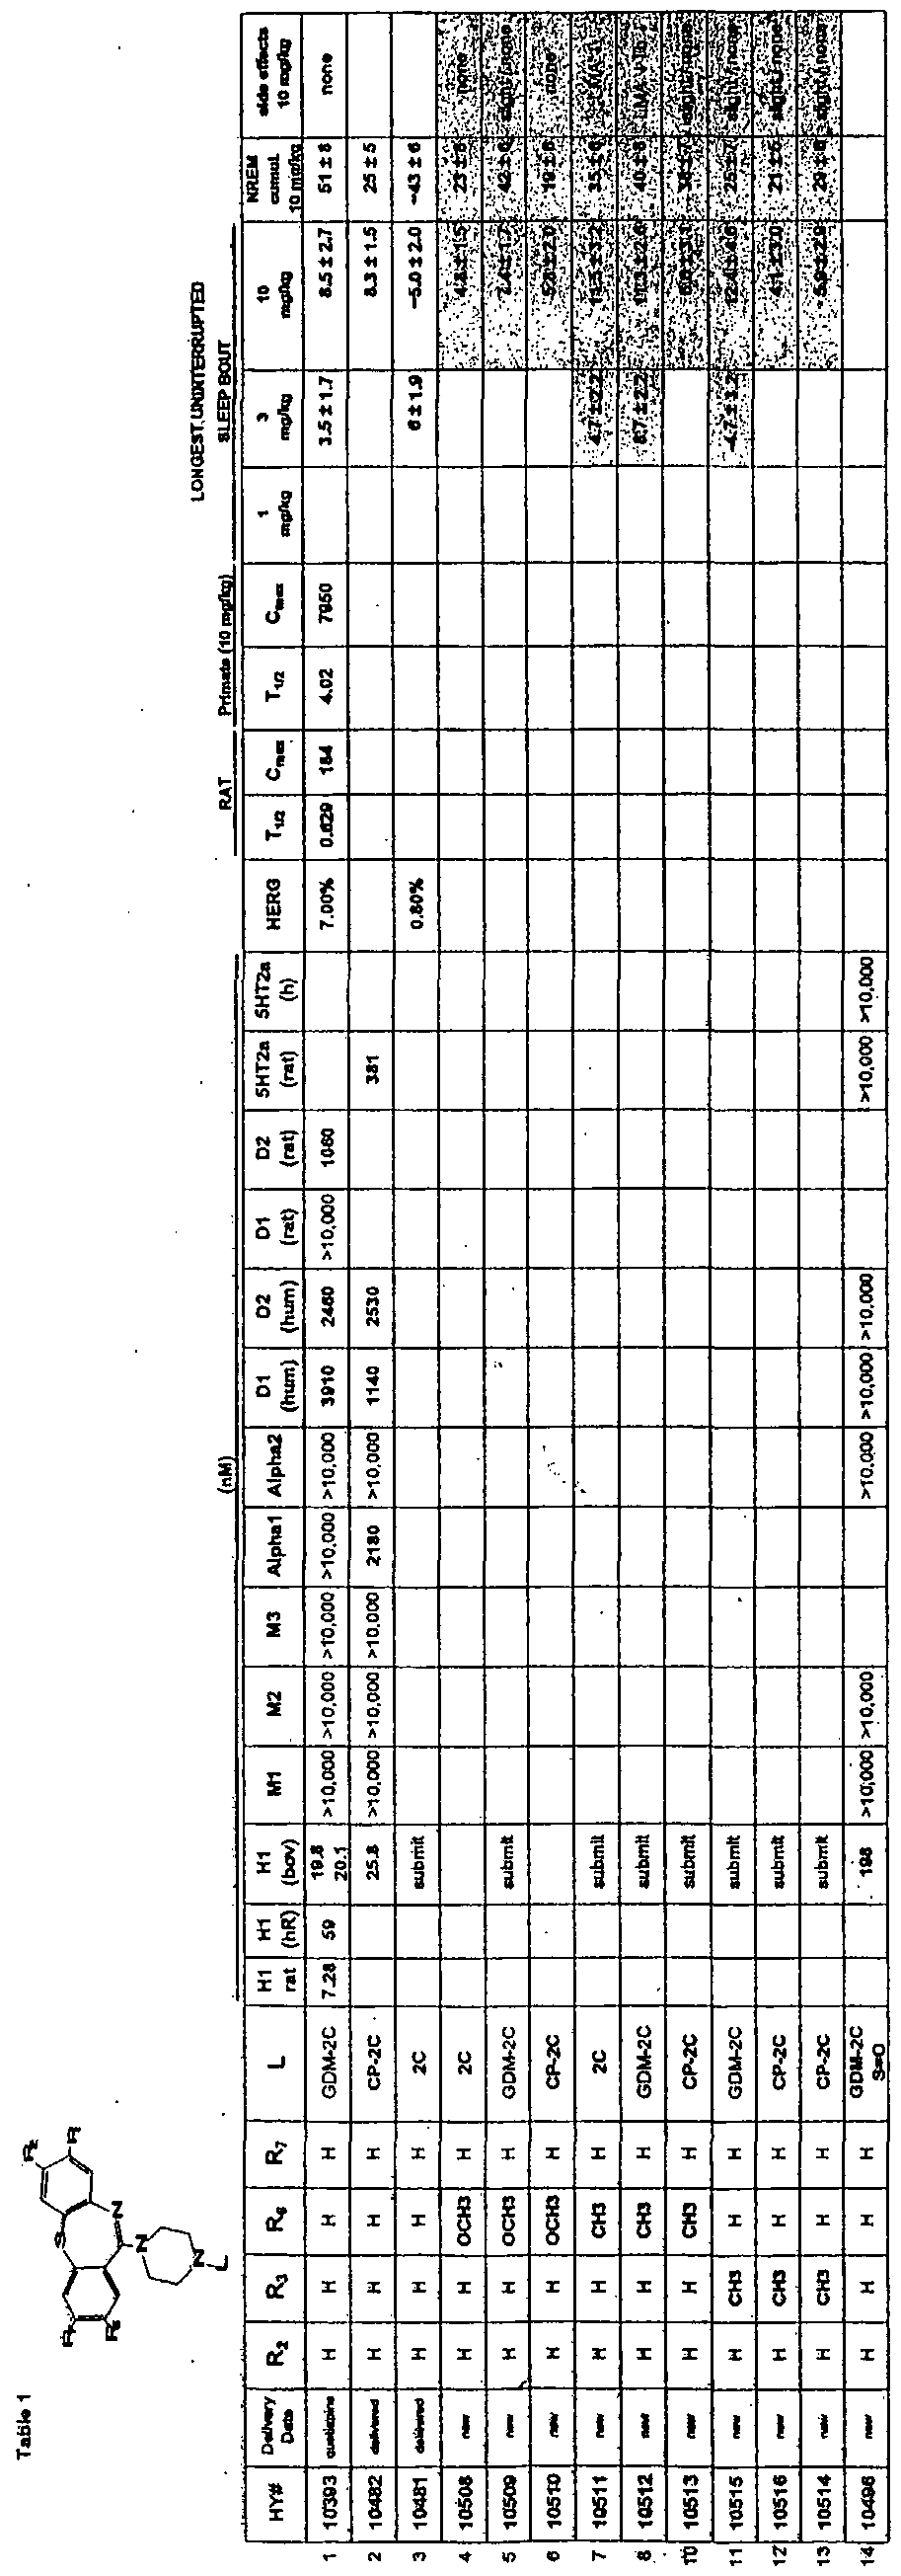 WO2006049734A2 - Quetiapine analogs and methods of use